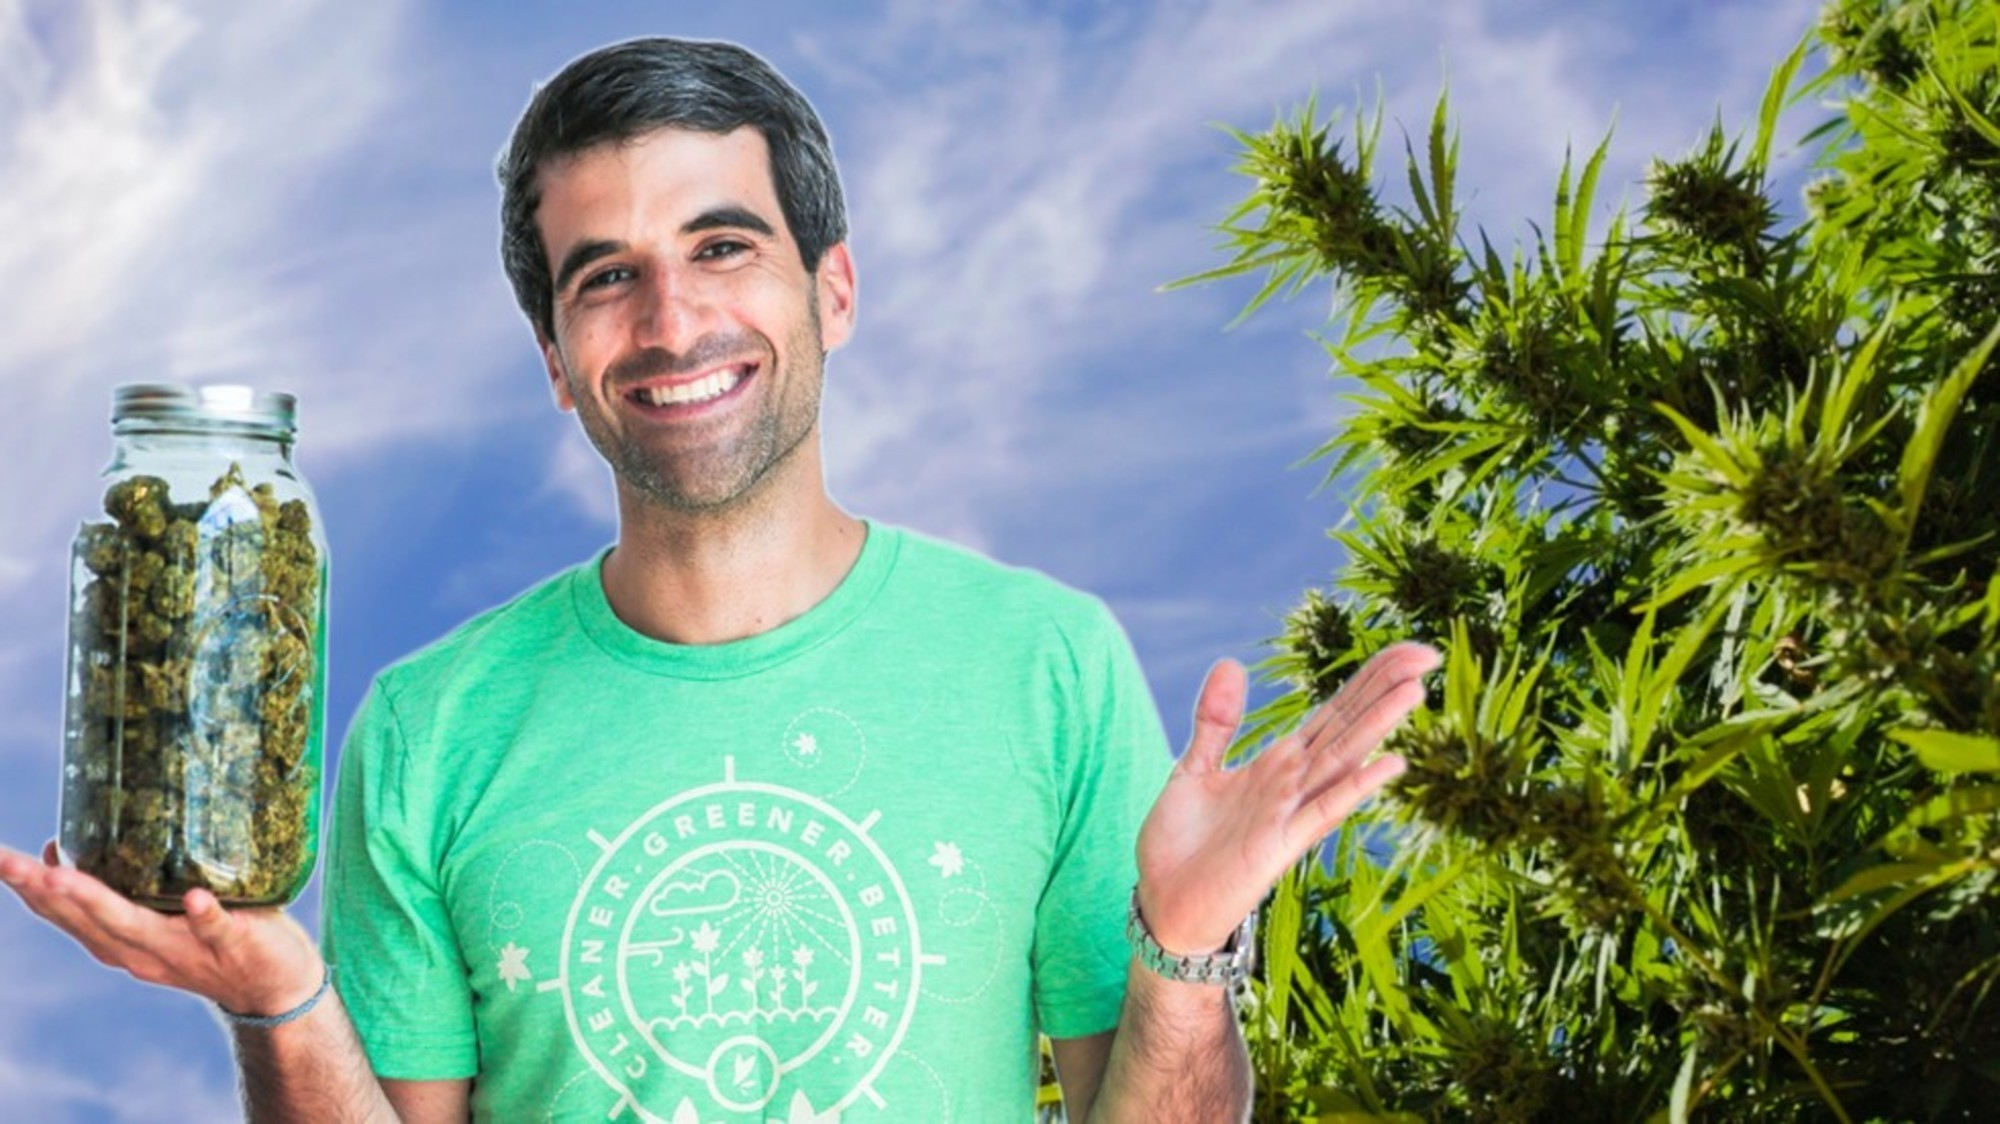 Meet The Former NASA Engineer Who Wants To Create The 'Whole Foods' of Weed